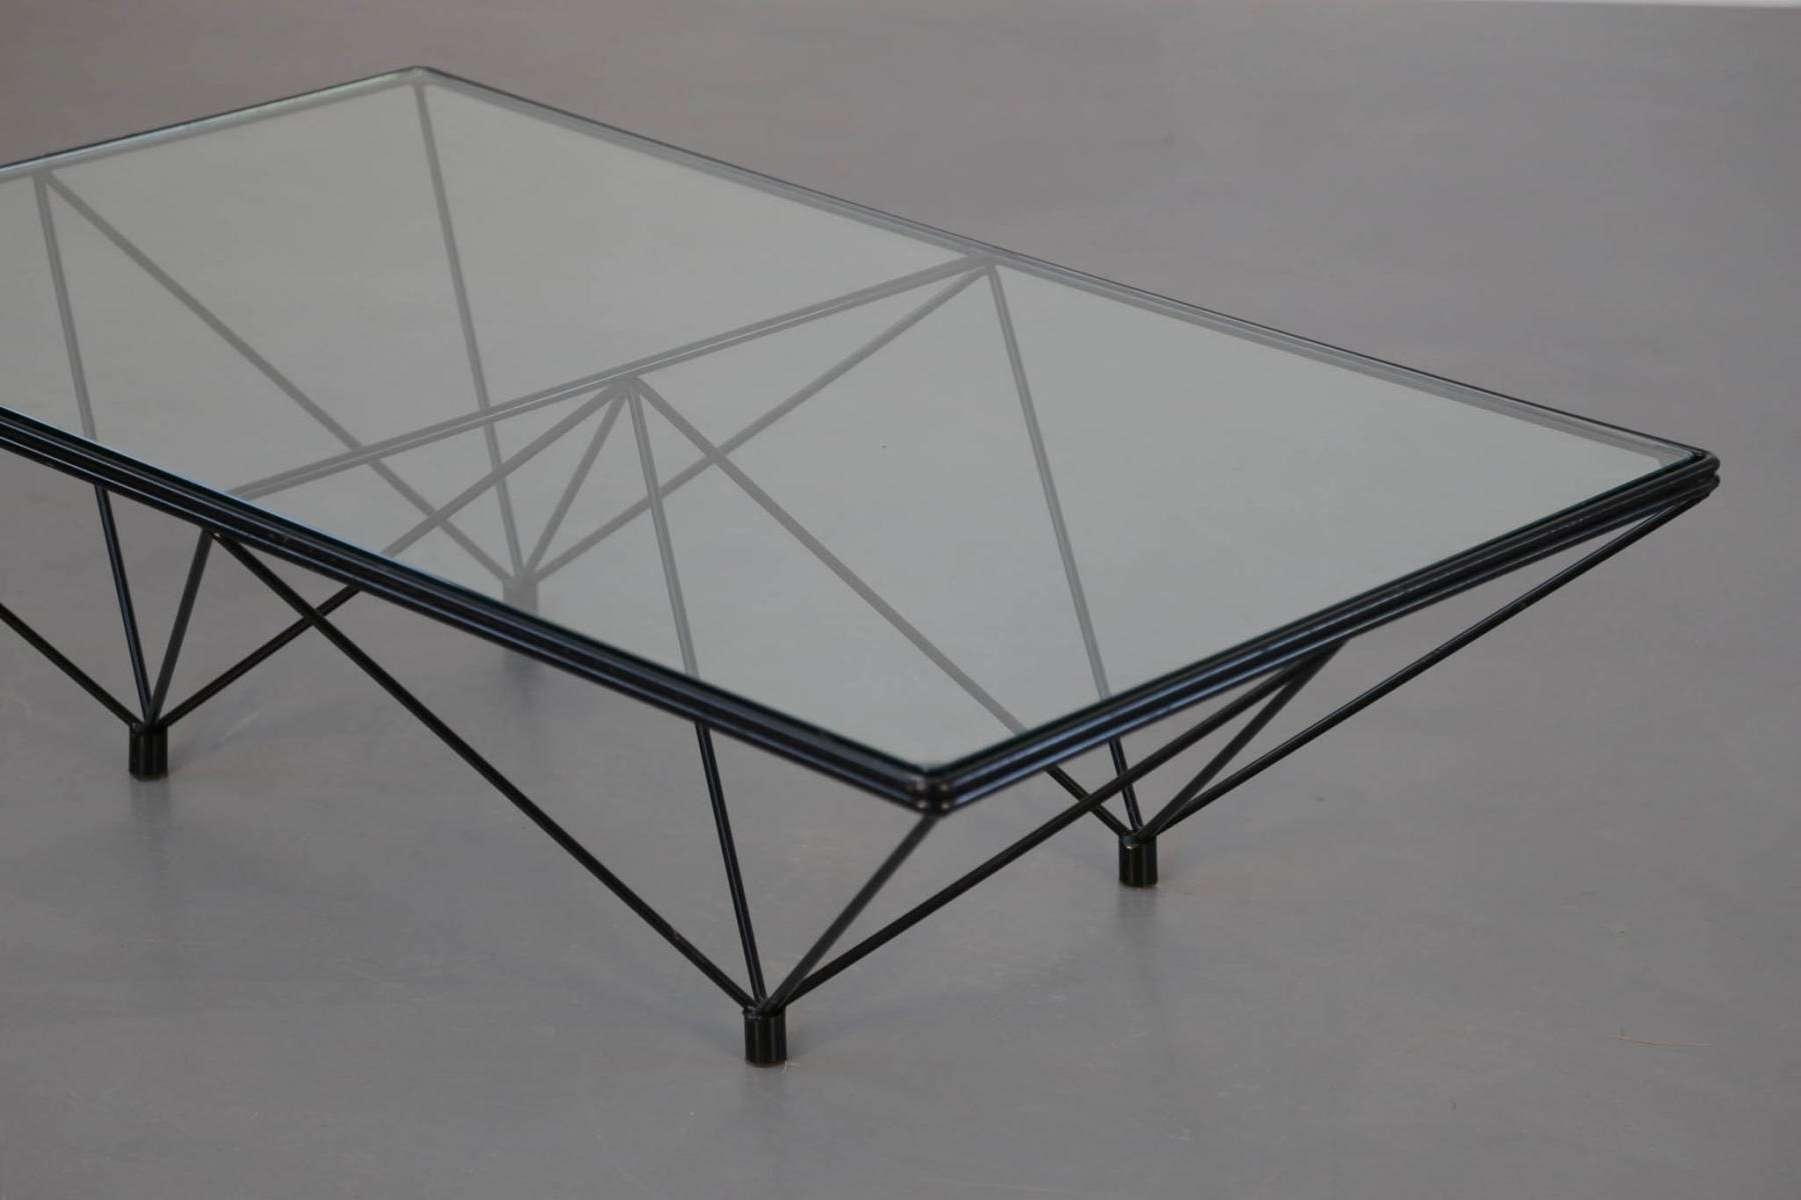 Coffee Tables : Chrome Glass End Tables Small Coffee Black Table Pertaining To Most Current Glass And Black Coffee Tables (View 5 of 20)